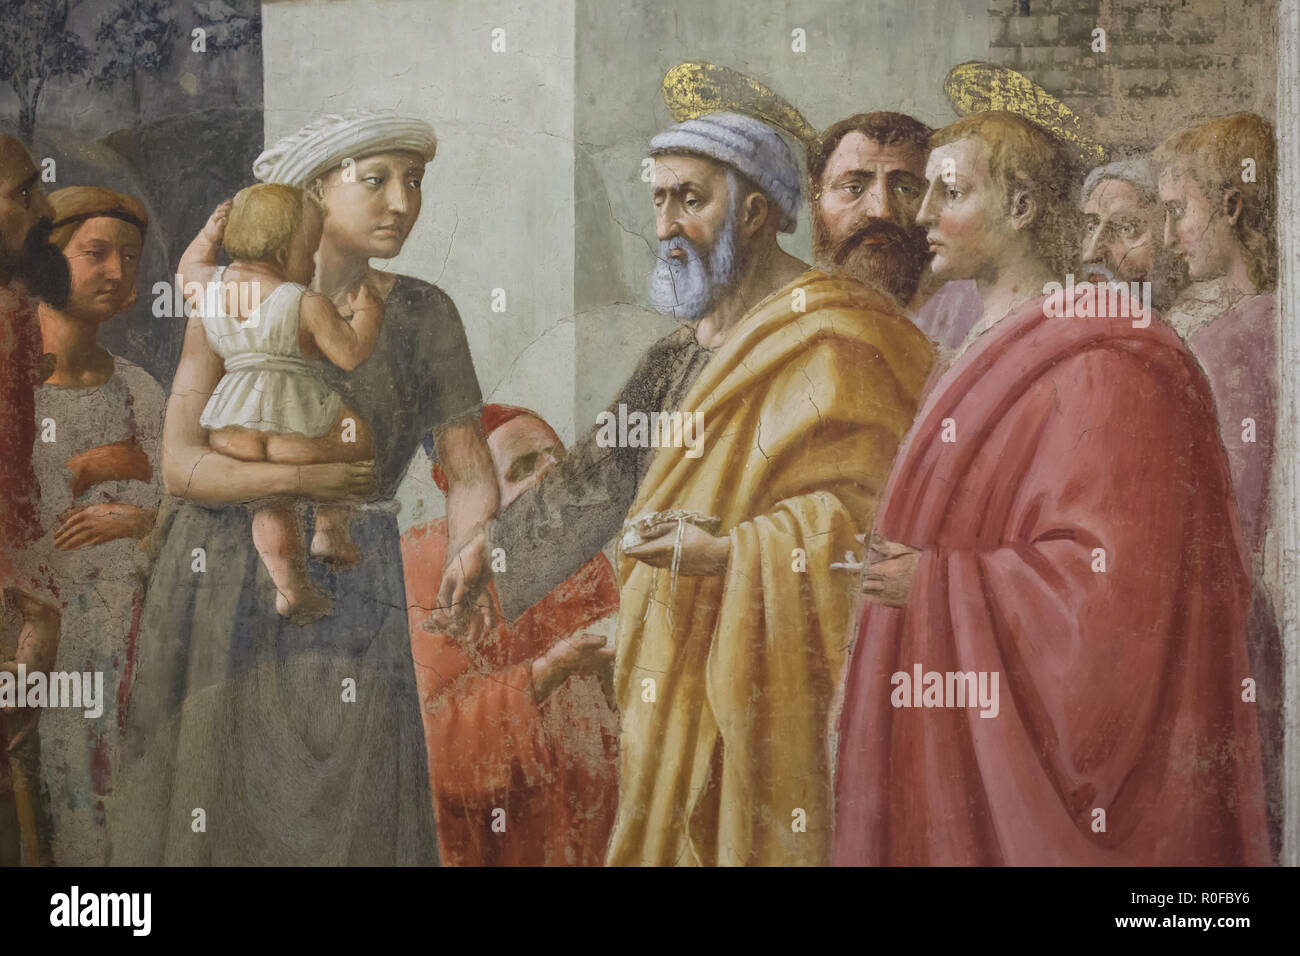 Detail of the fresco 'Distribution of Alms and Death of Ananias' by Italian Renaissance painter Masaccio (1426-1427) in the Brancacci Chapel (Cappella Brancacci) in the Church of Santa Maria del Carmine in Florence, Tuscany, Italy. Stock Photo